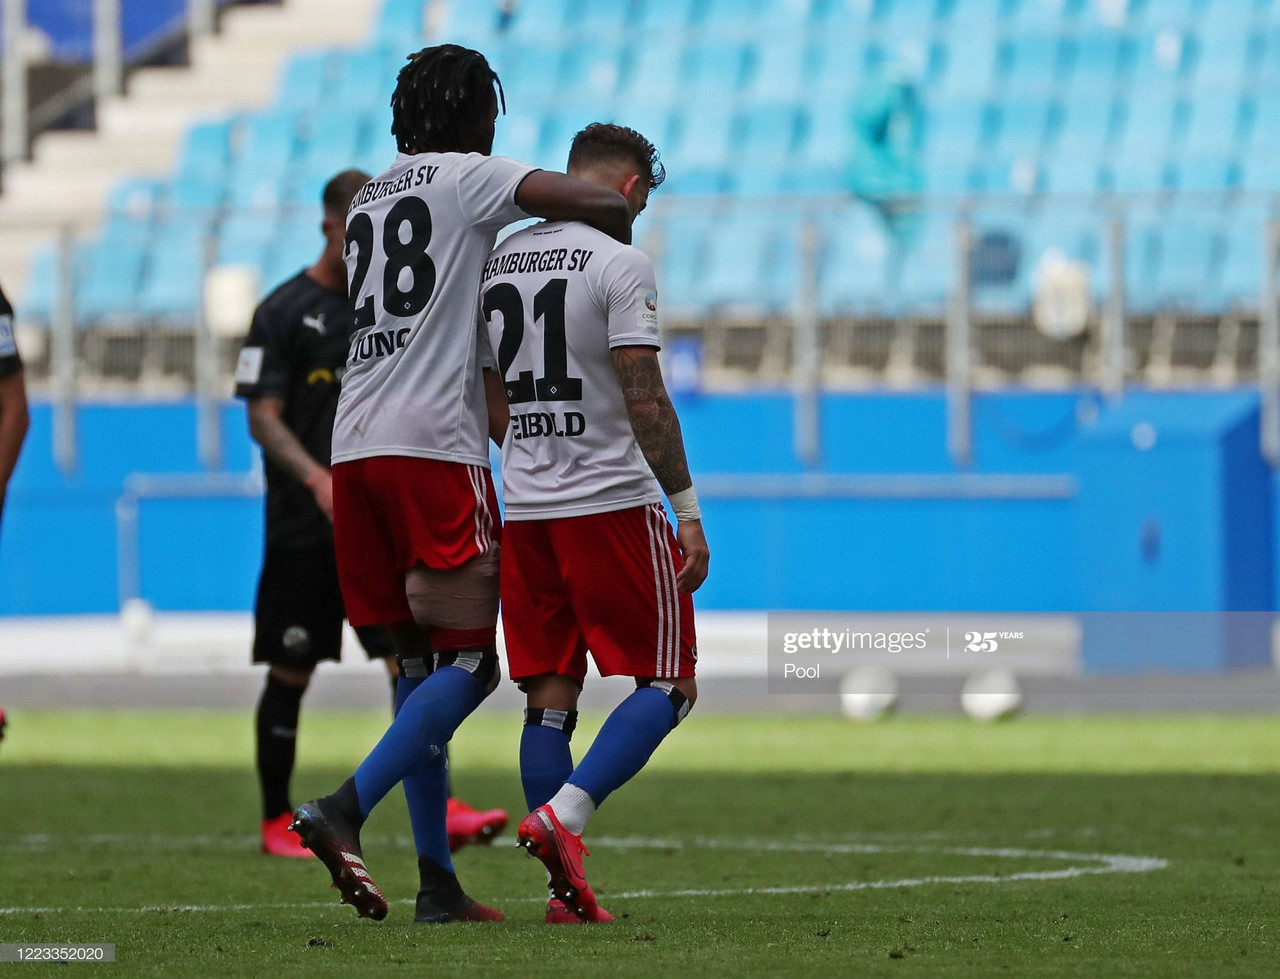 Hamburger SV 1-5 Sandhausen: HSV compound a miserable end to the 2019/20 season with a heavy home defeat.